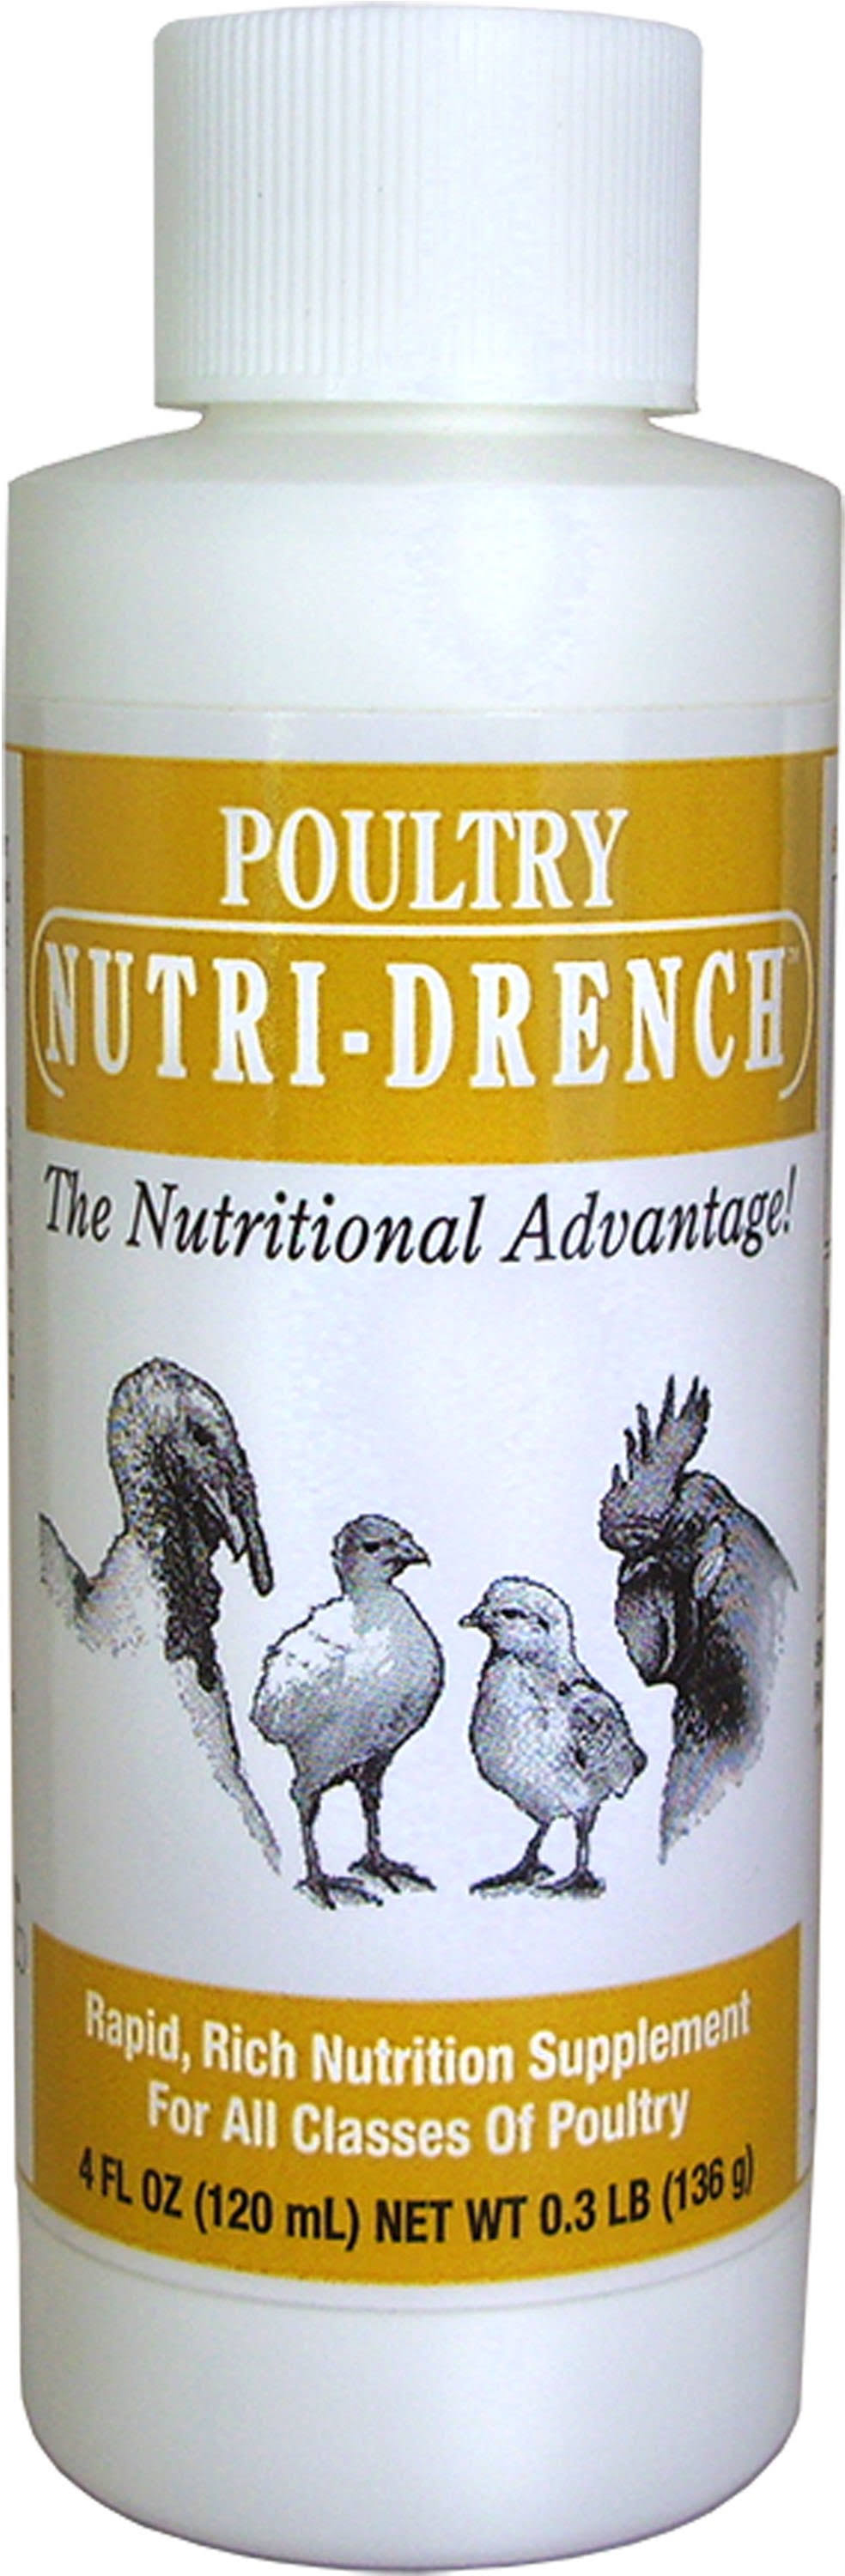 Poultry Nutri-Drench Nutrition Supplement